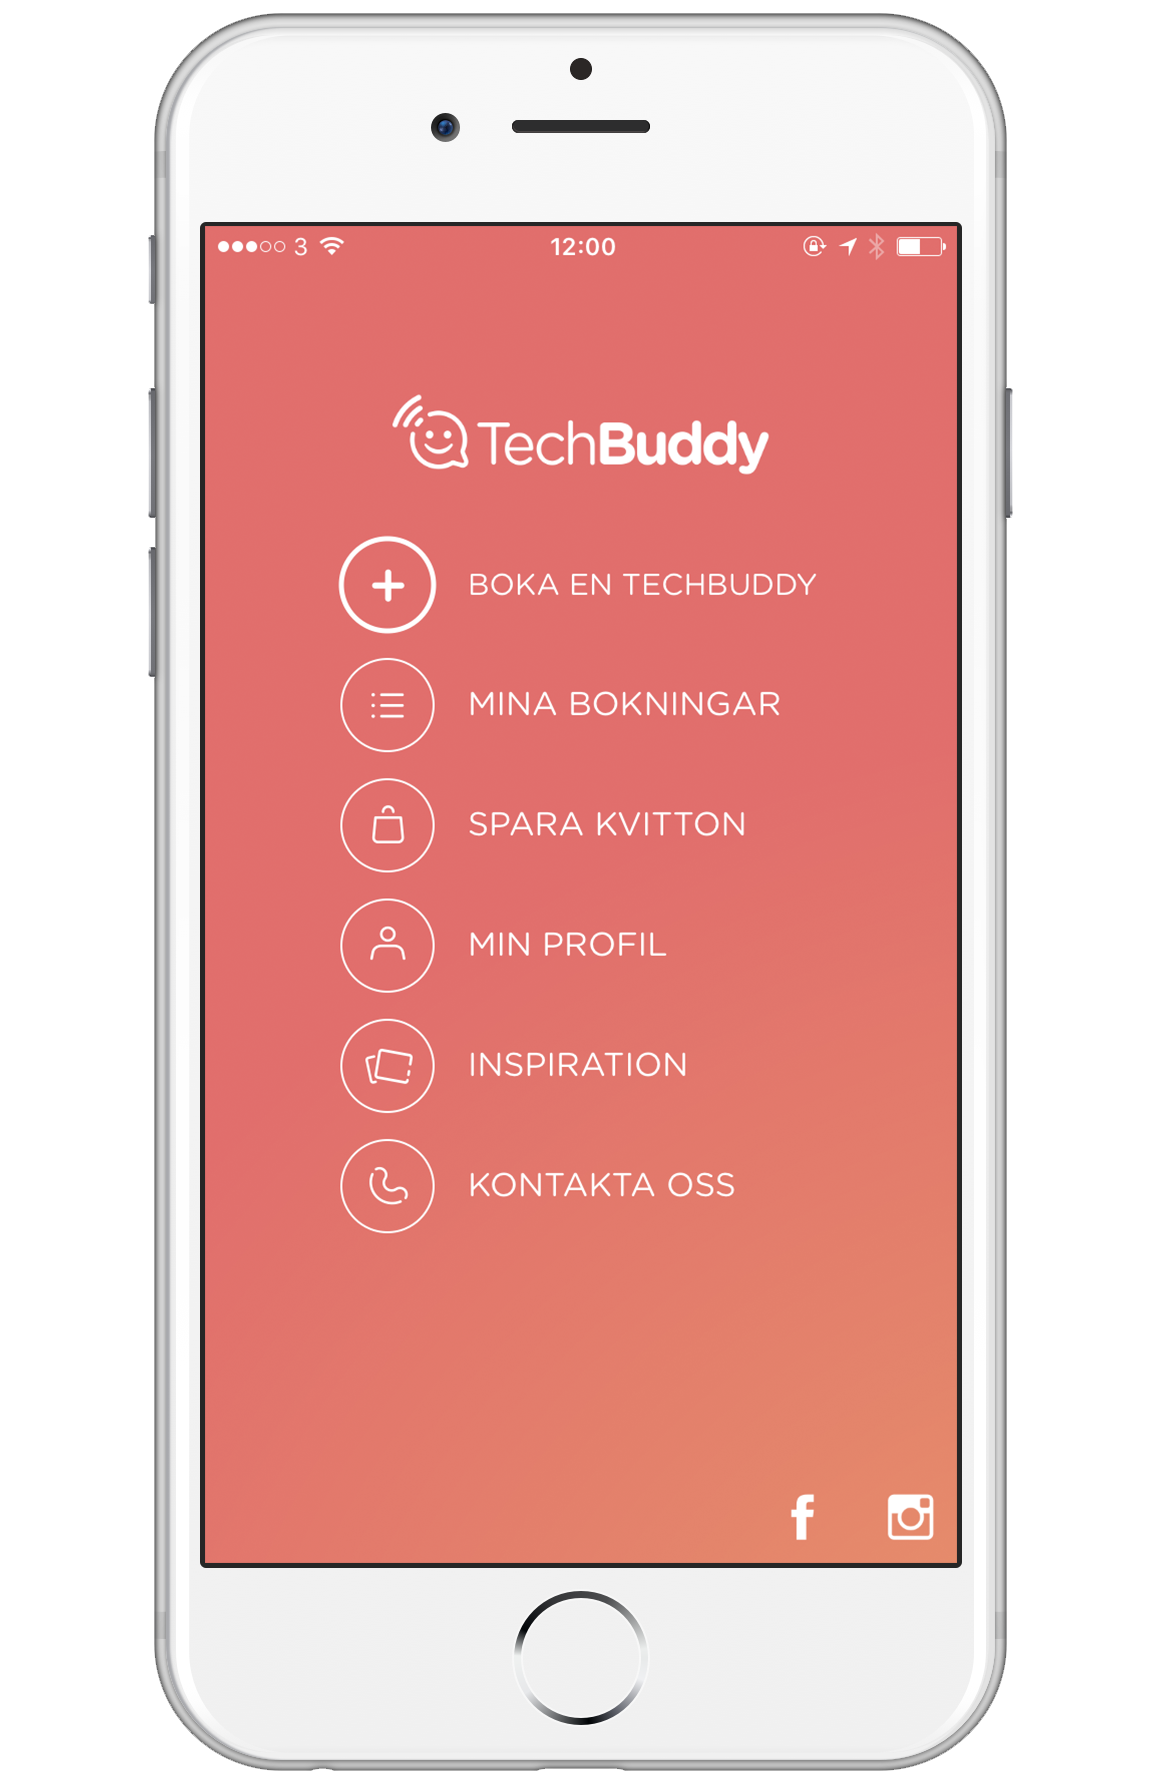 TechBuddy Appen